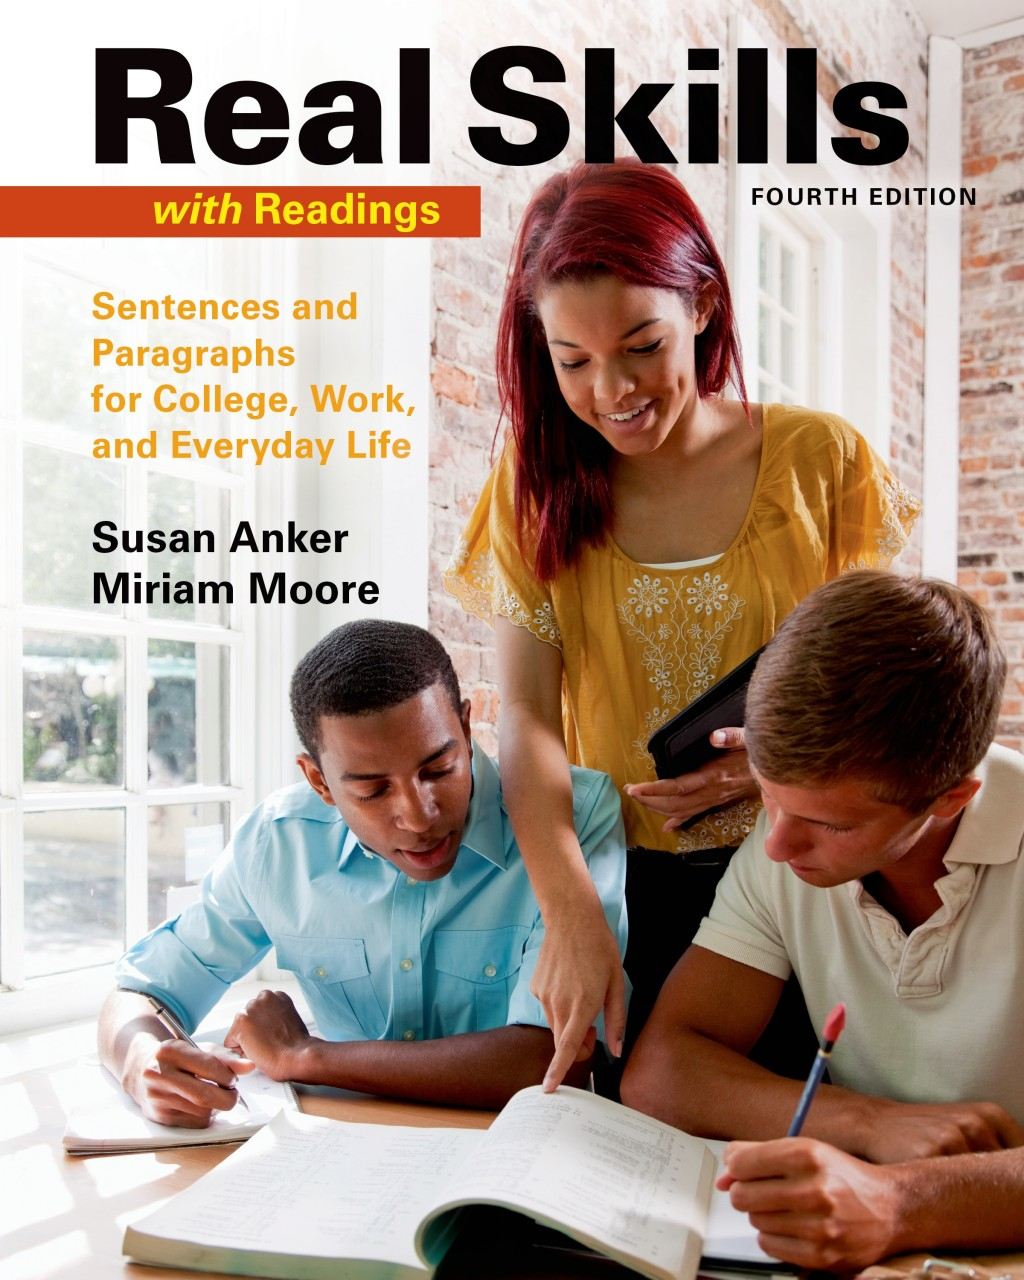 003 Real Essays With Readings 5th Edition Essay Wonderful Answer Key Online Ebook Large